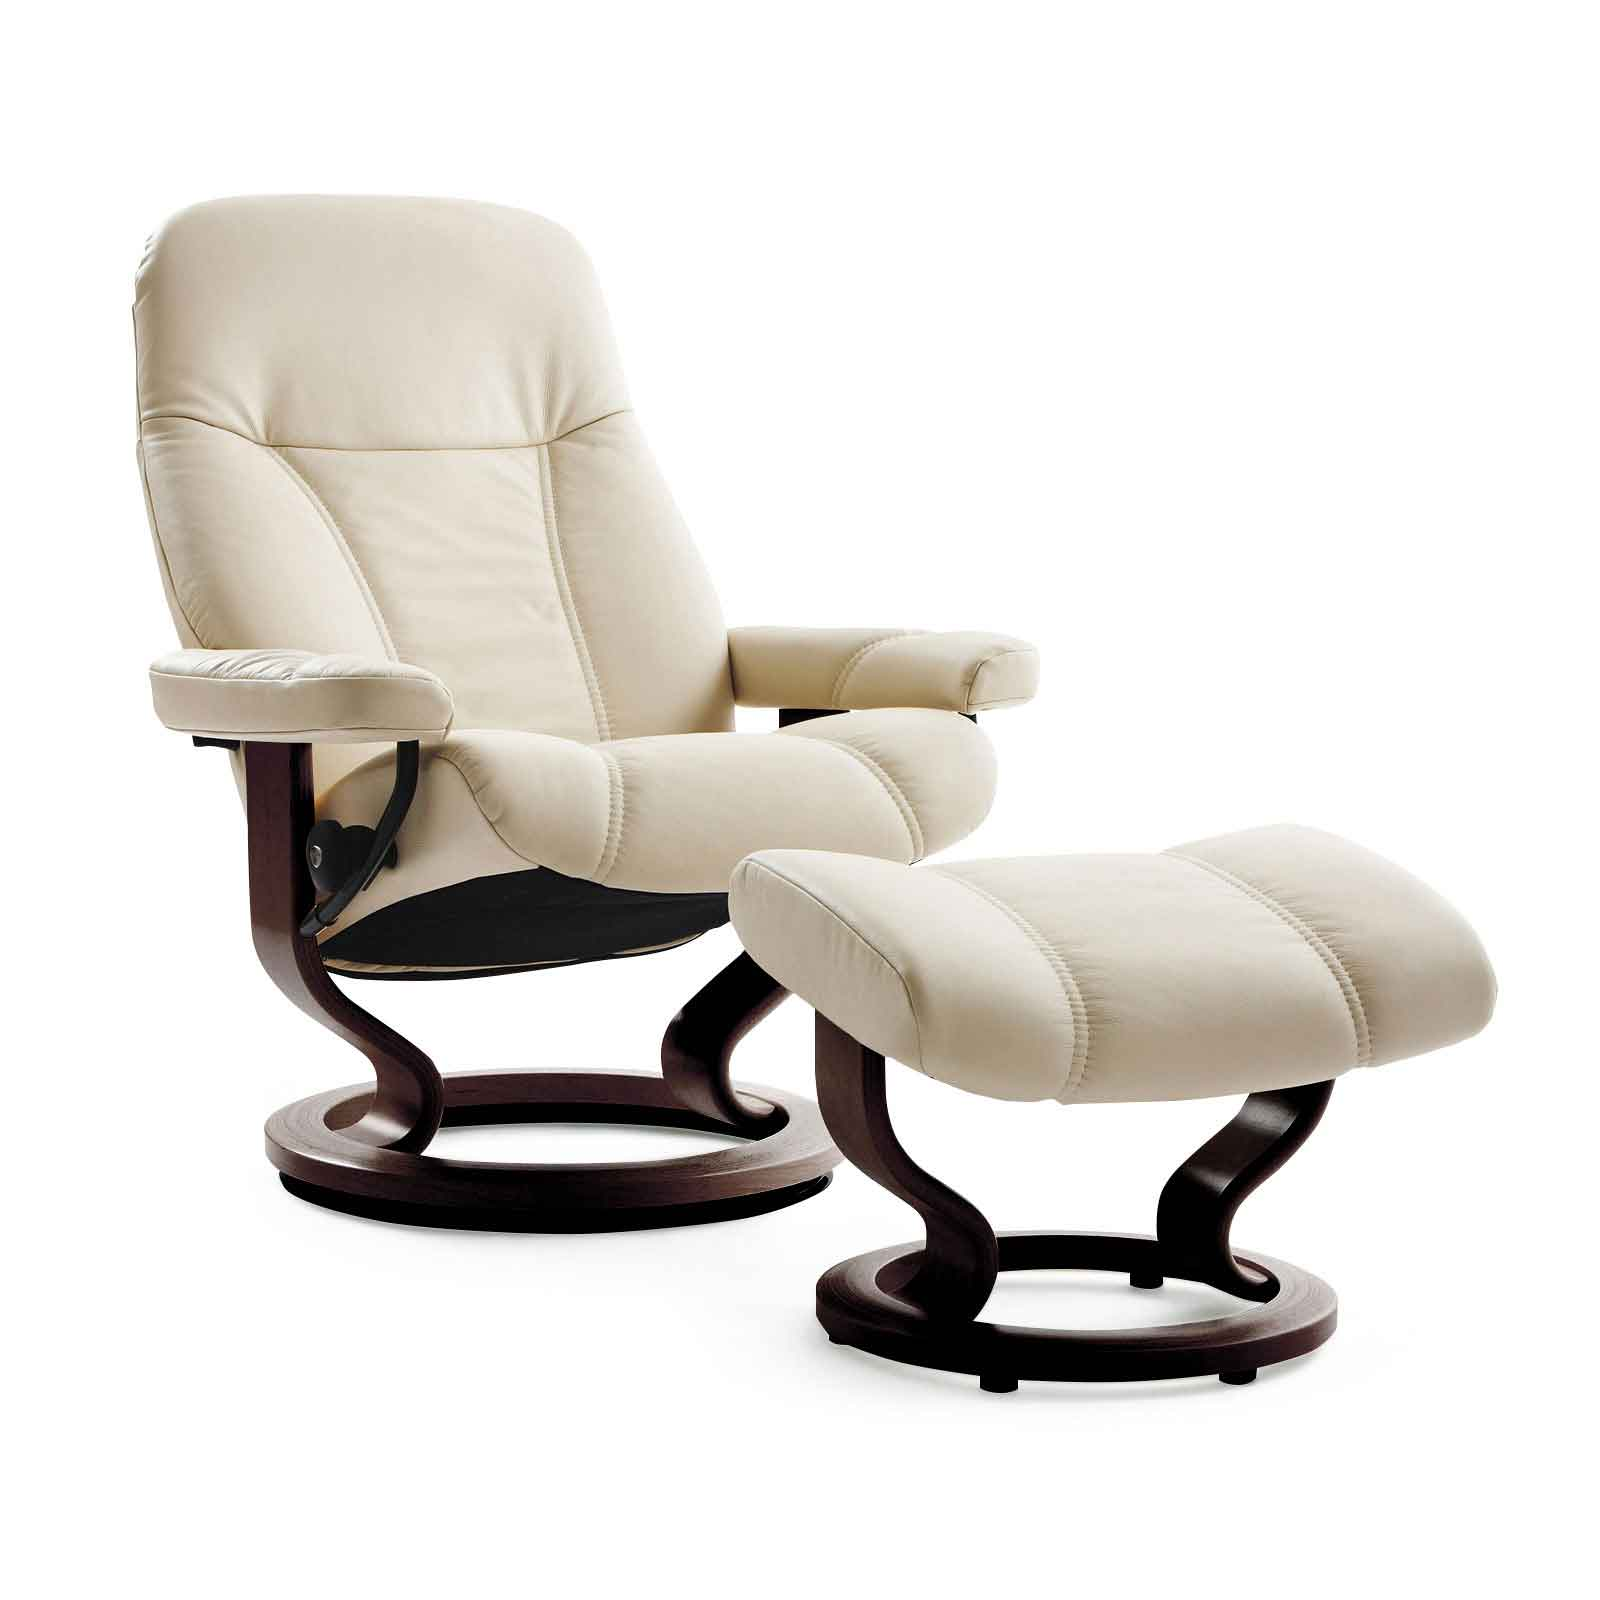 Stressless Sessel Höffner Stressless Sessel Consul M Batick Cream Mit Hocker